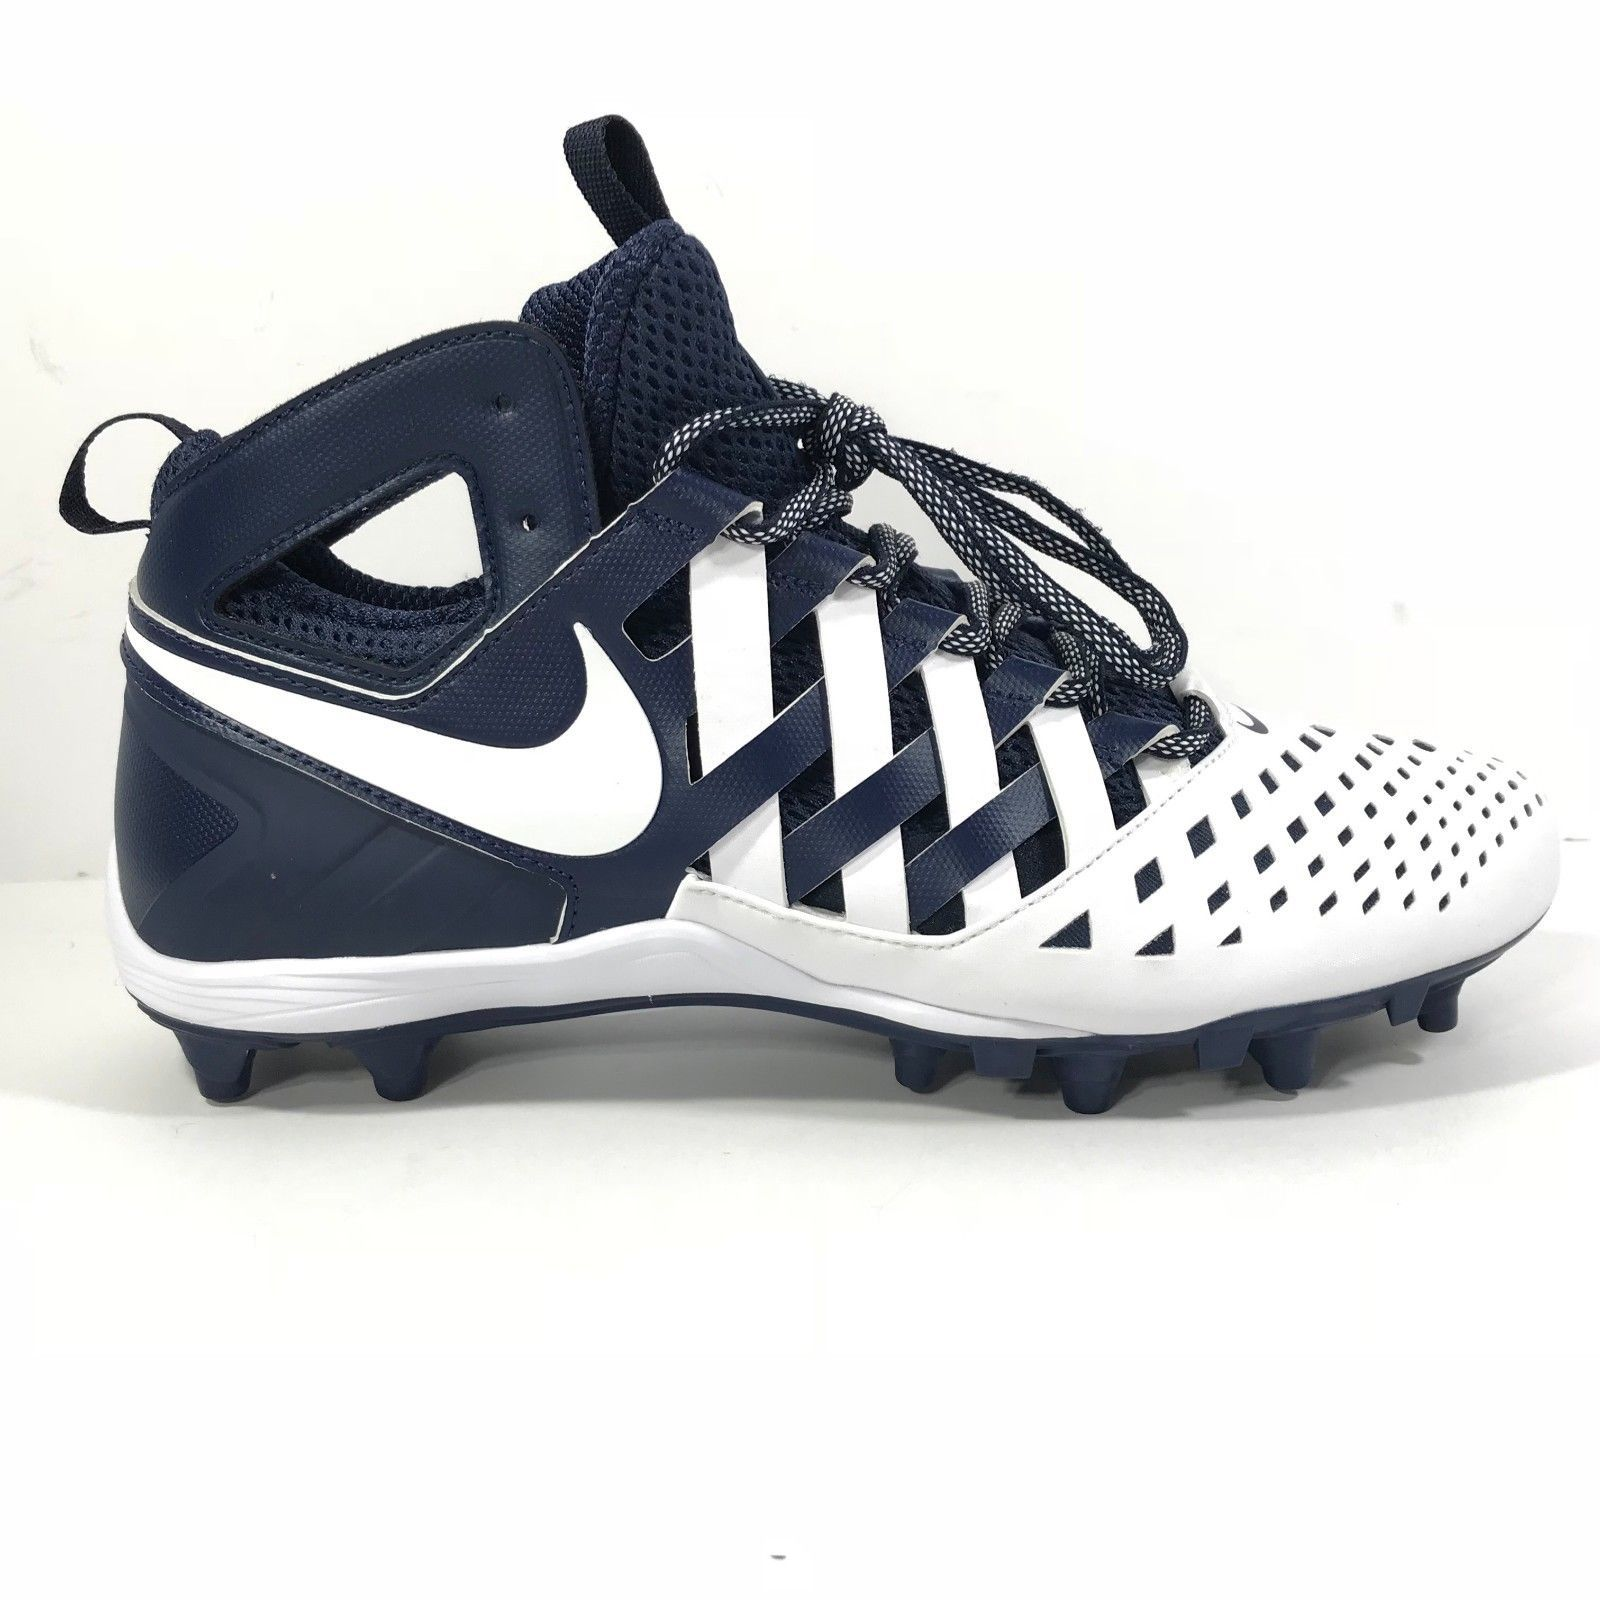 official photos 53ab1 e04b0 Nike Huarache V 5 LAX Lacrosse TD Football Cleats Navy White 807142-410 sz